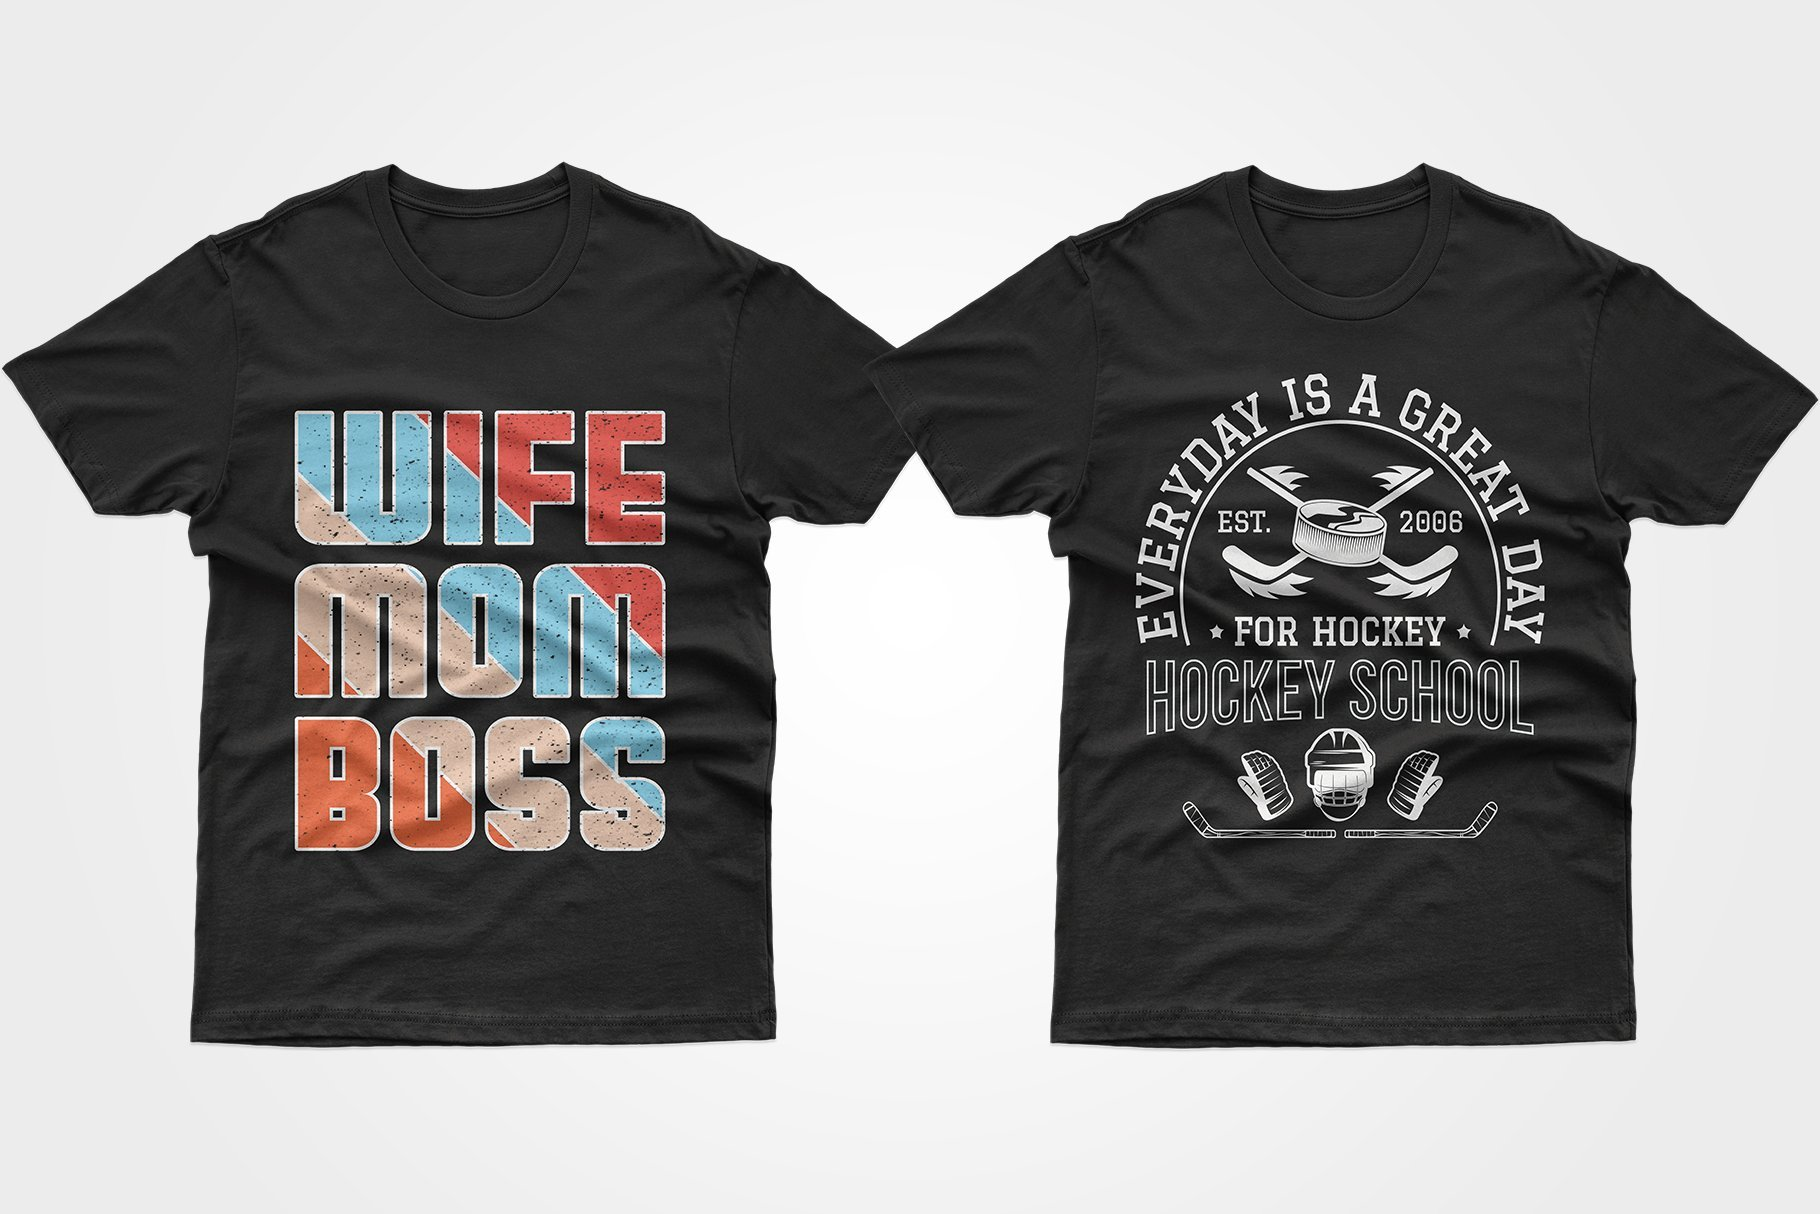 Two black T-shirts - one with a phrase about mom, the other with an advertisement for a hockey school.